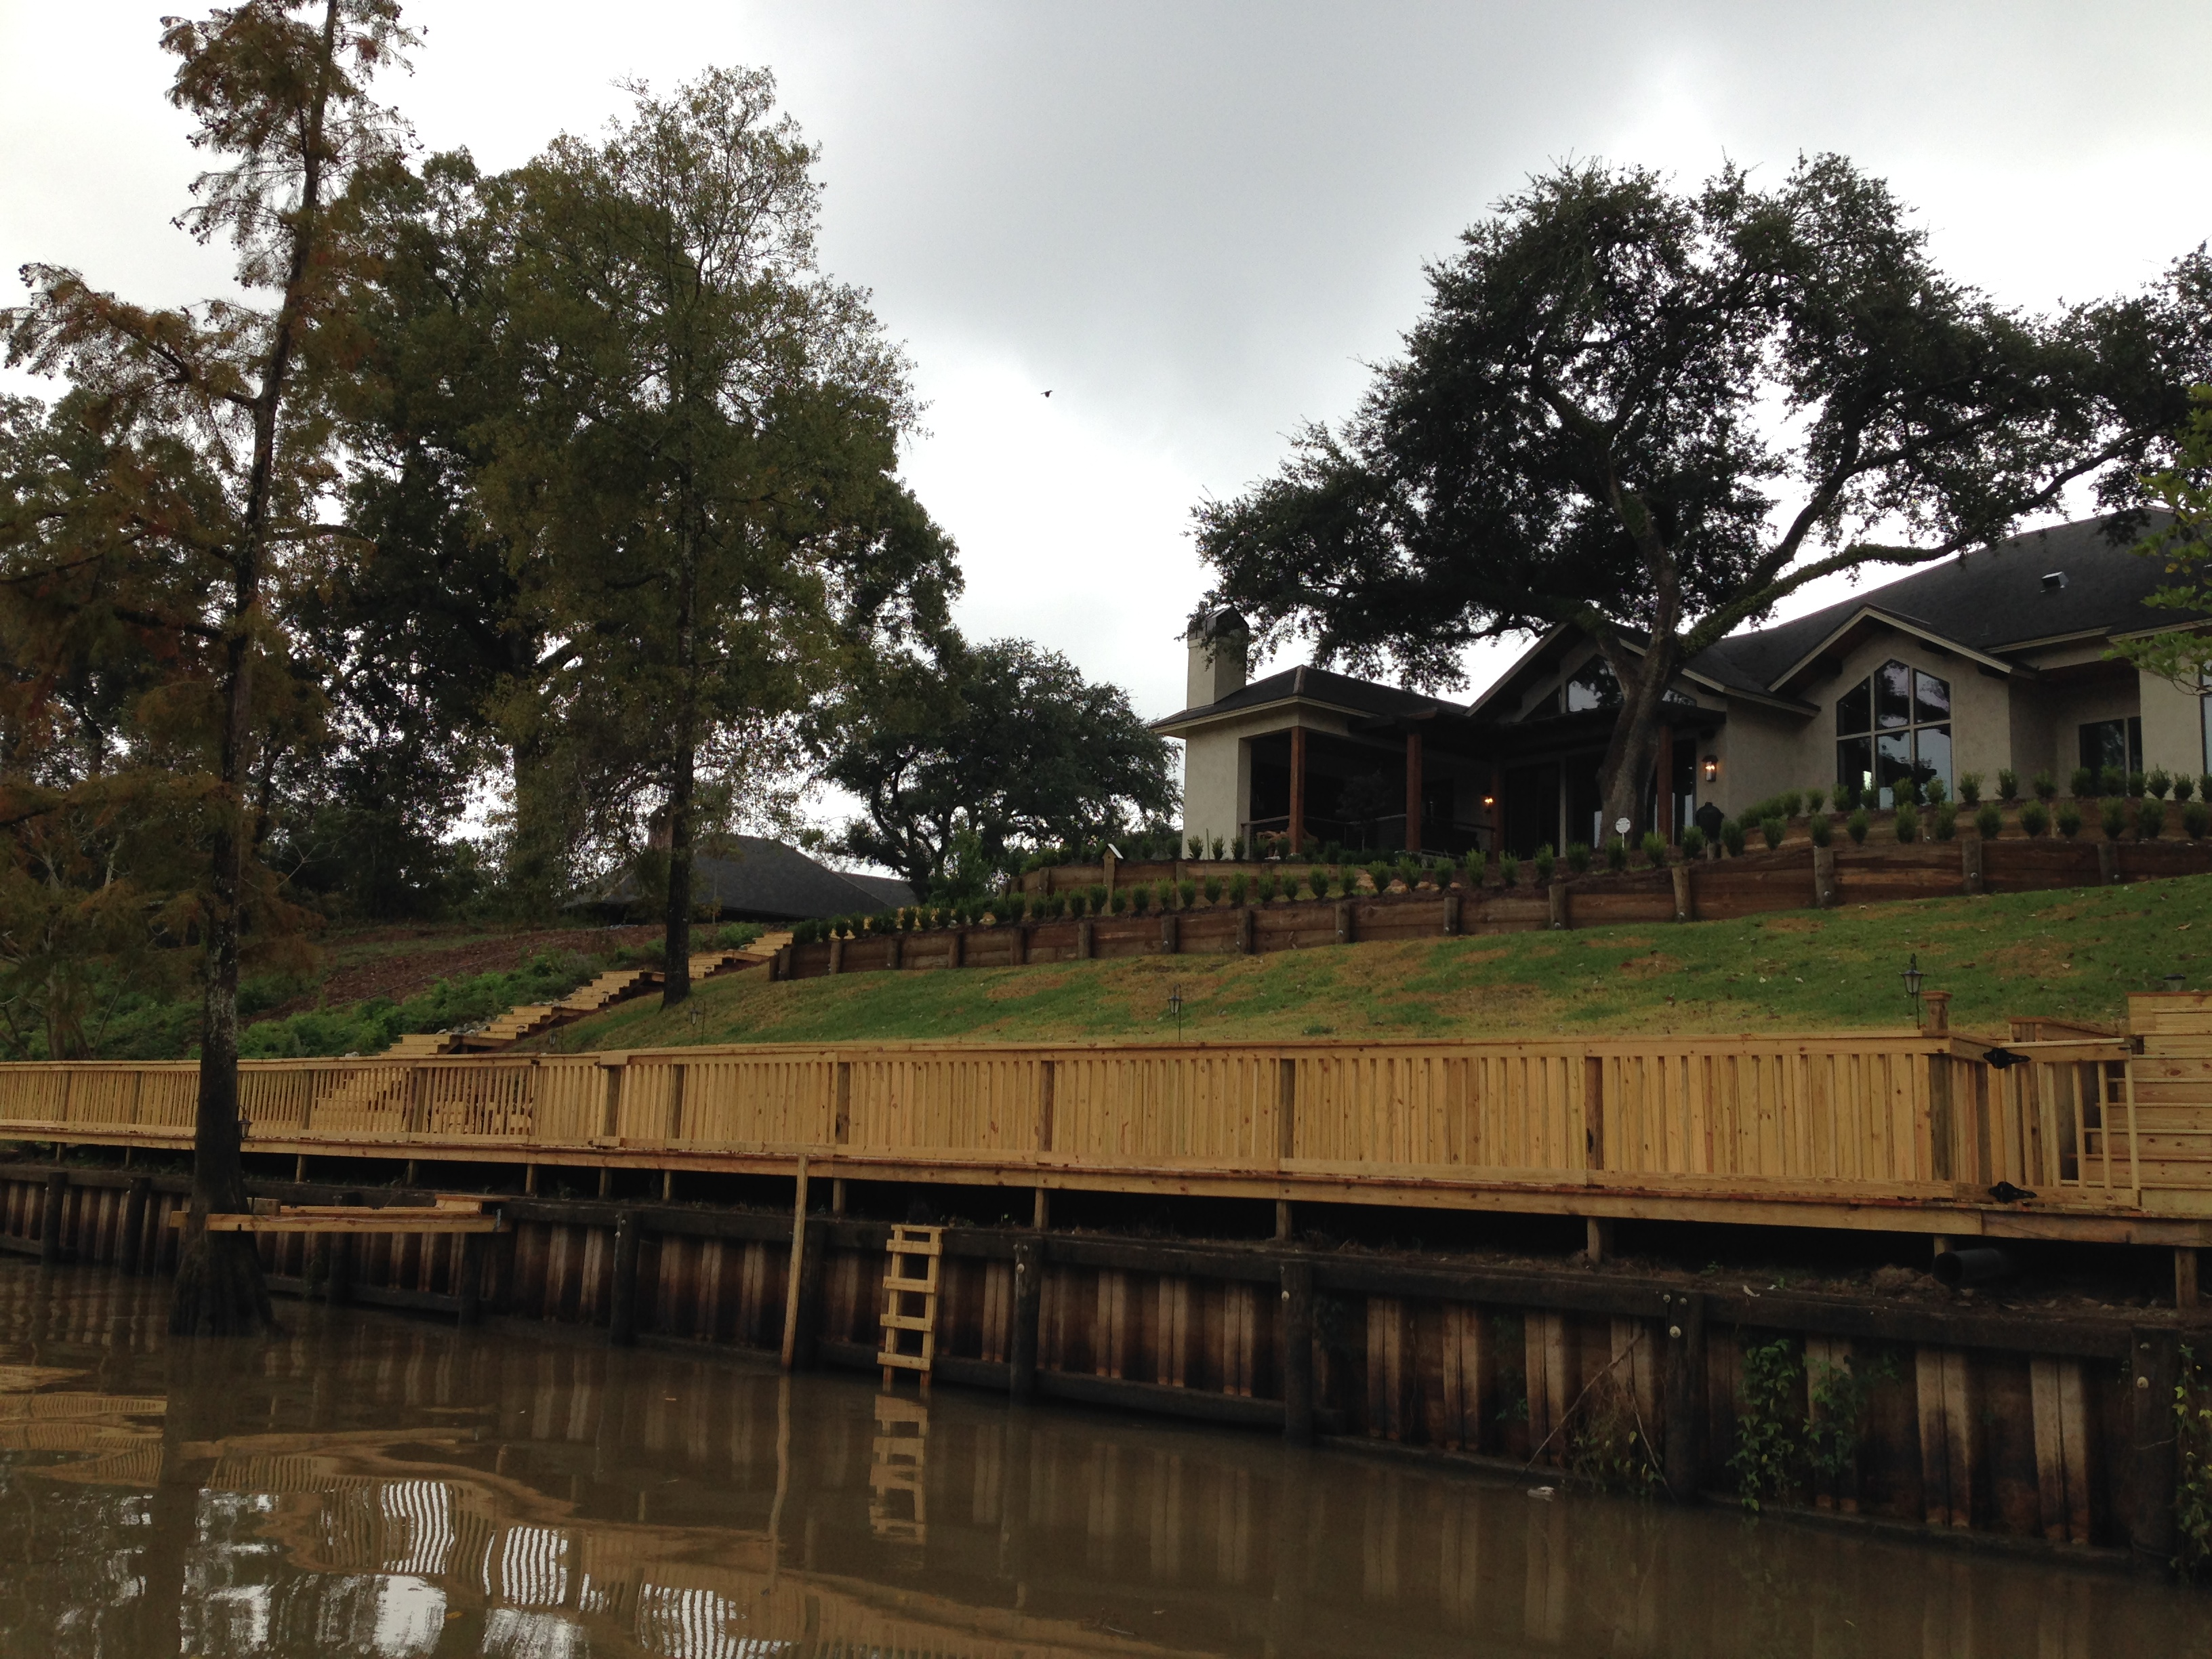 Deck Building Company Lake Charles Lafayette La Able